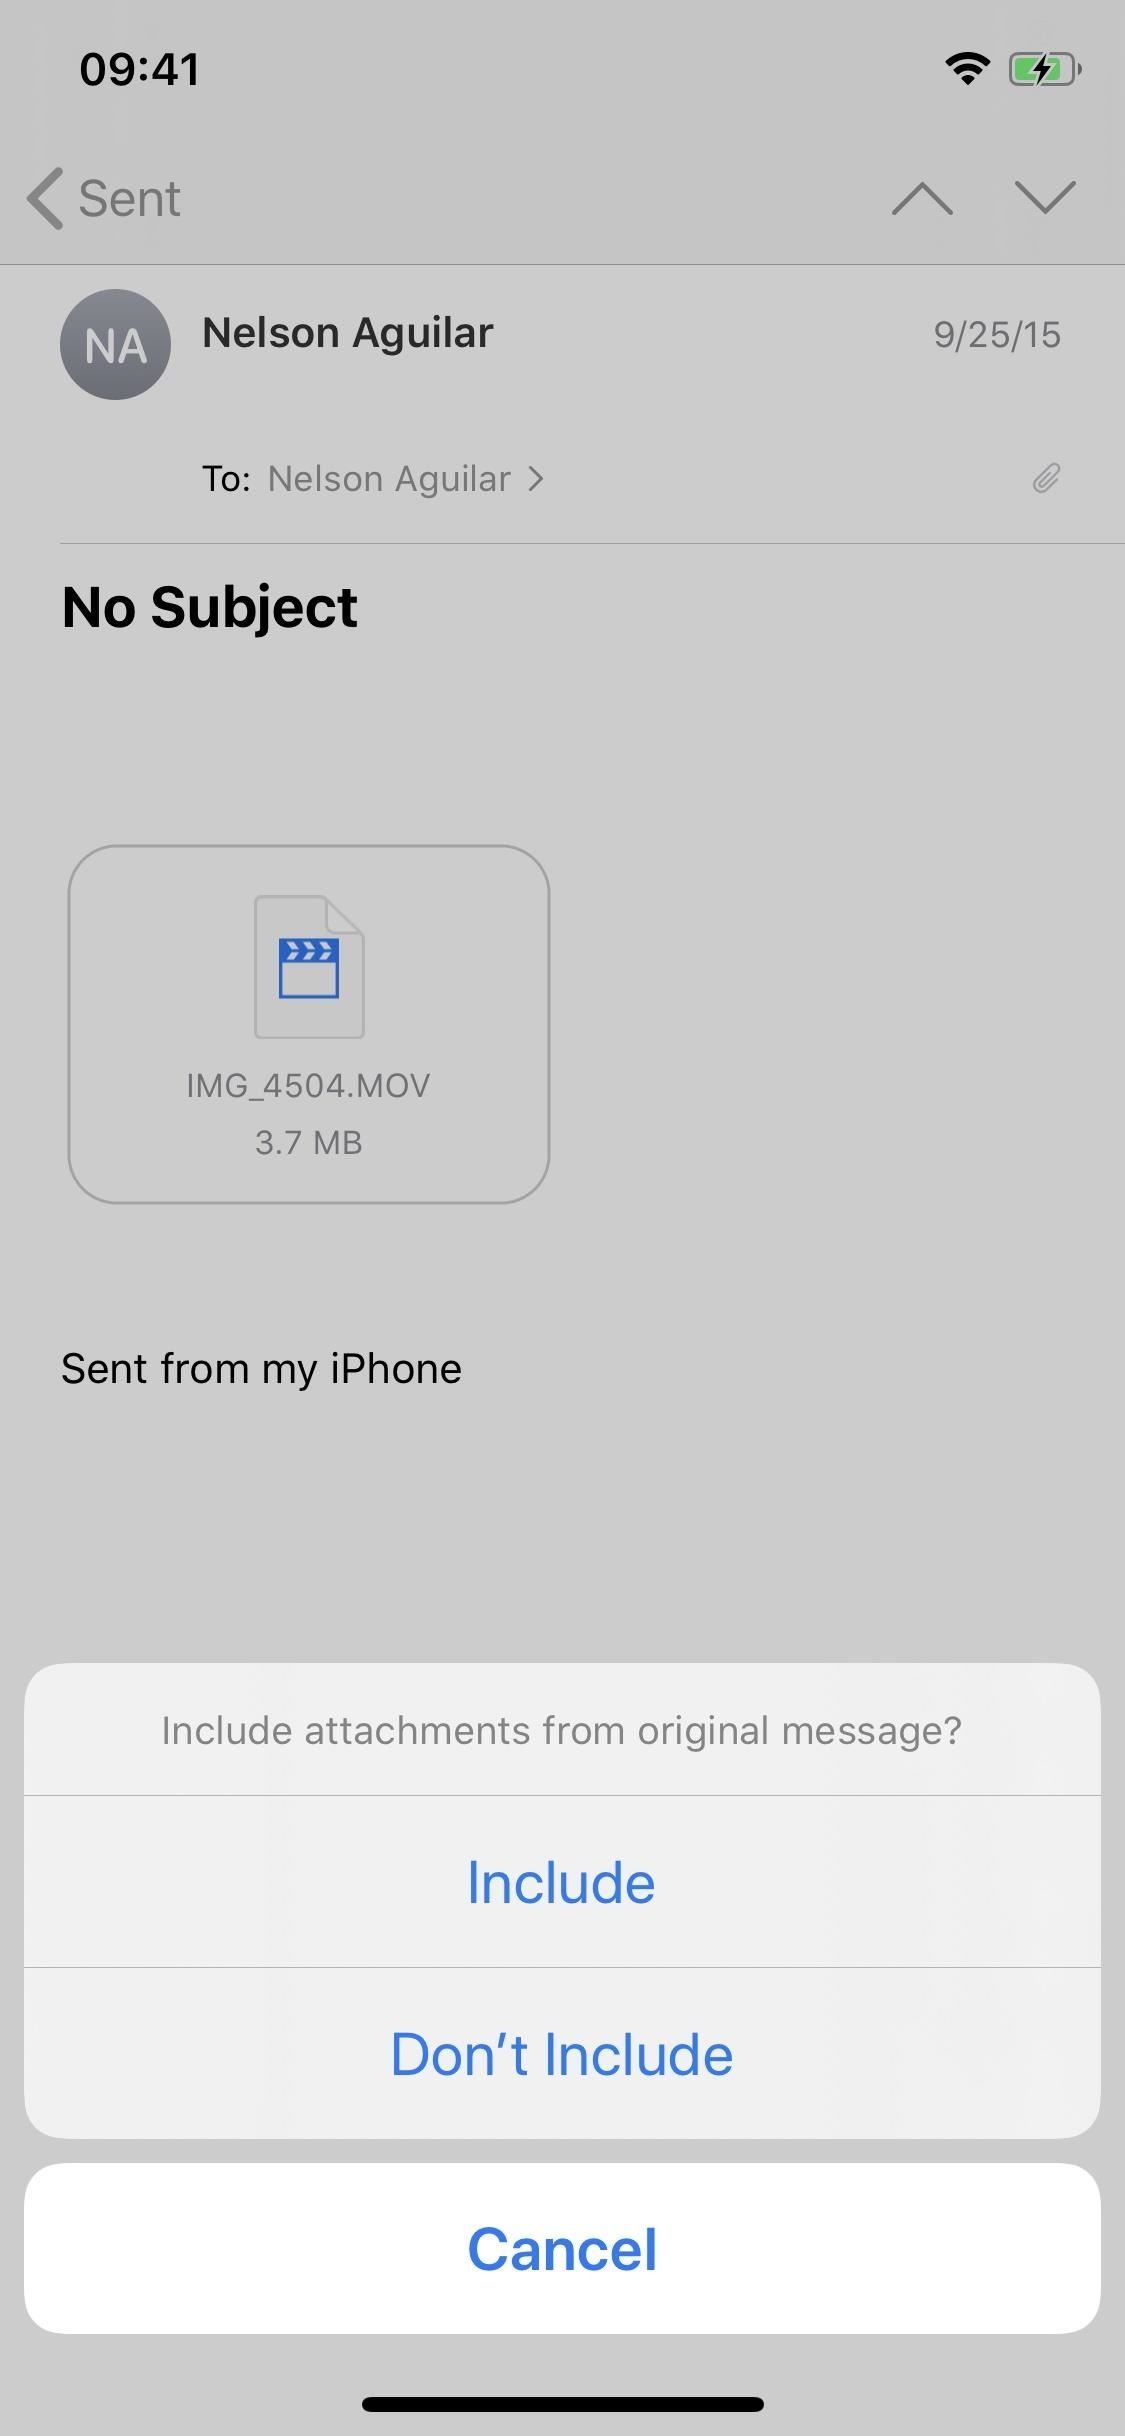 22 New features in the mail app of iOS 13 to master the art of email